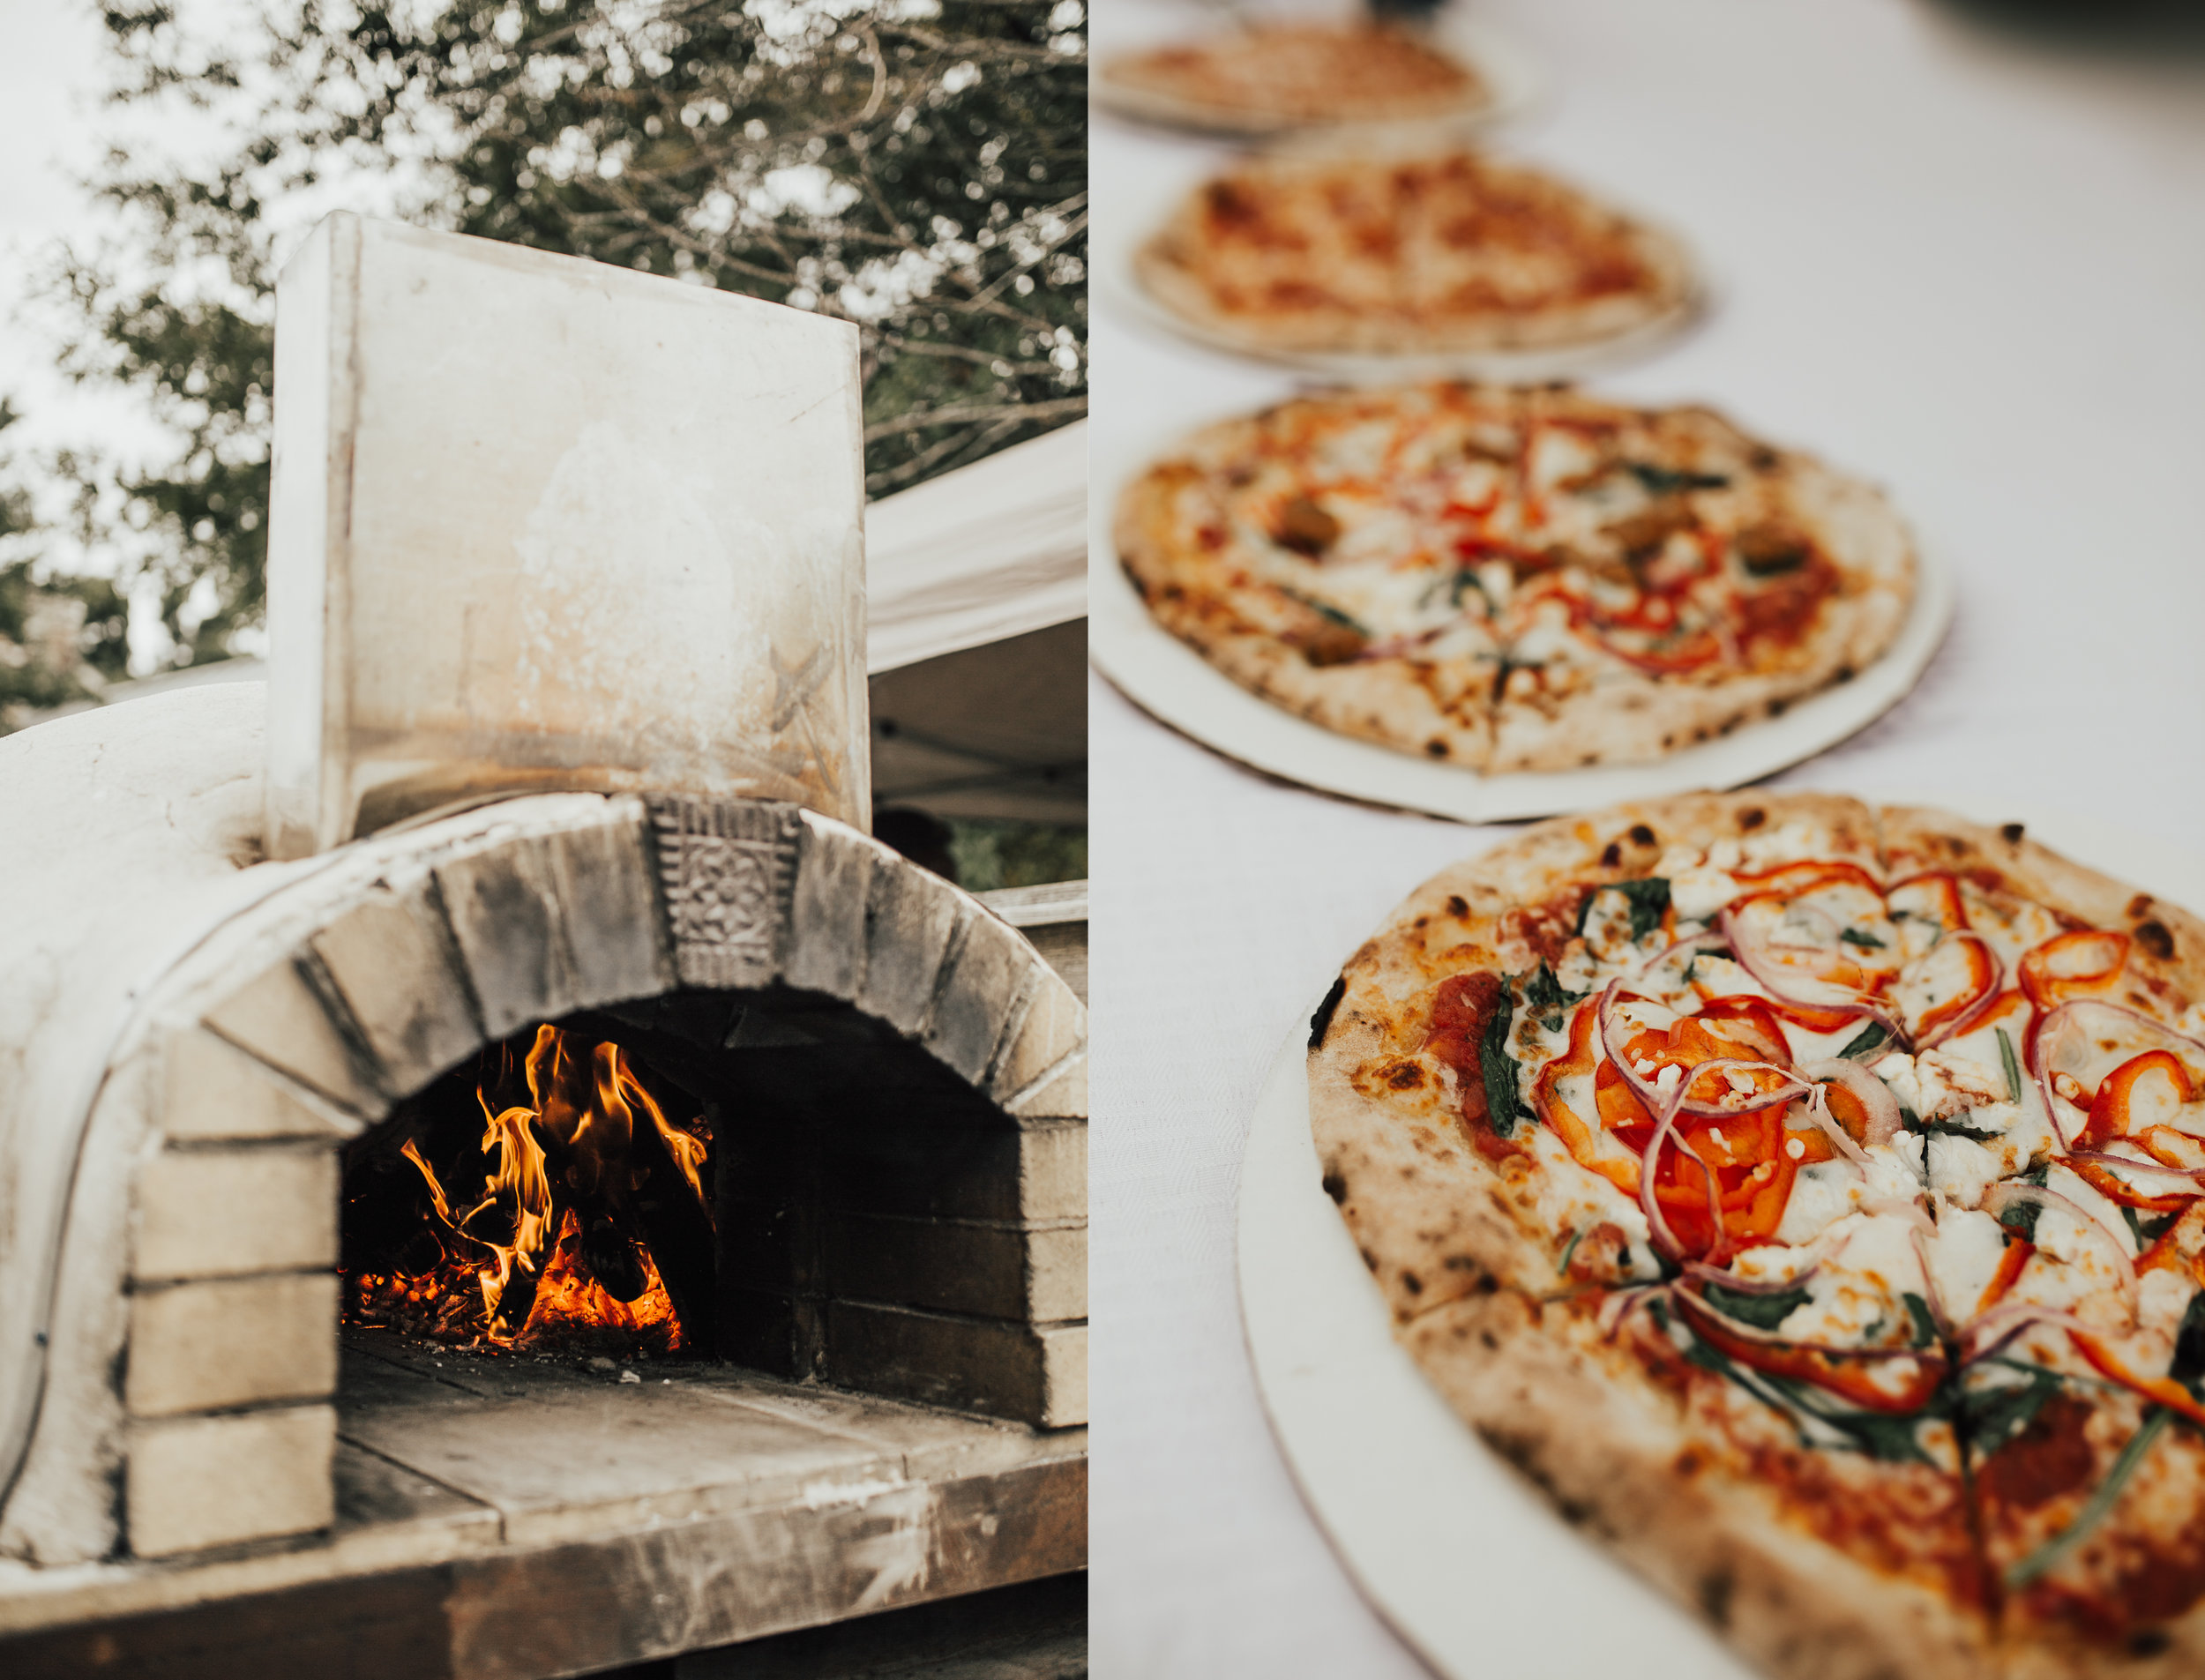 The brick oven cooked pizza was to DIE for.